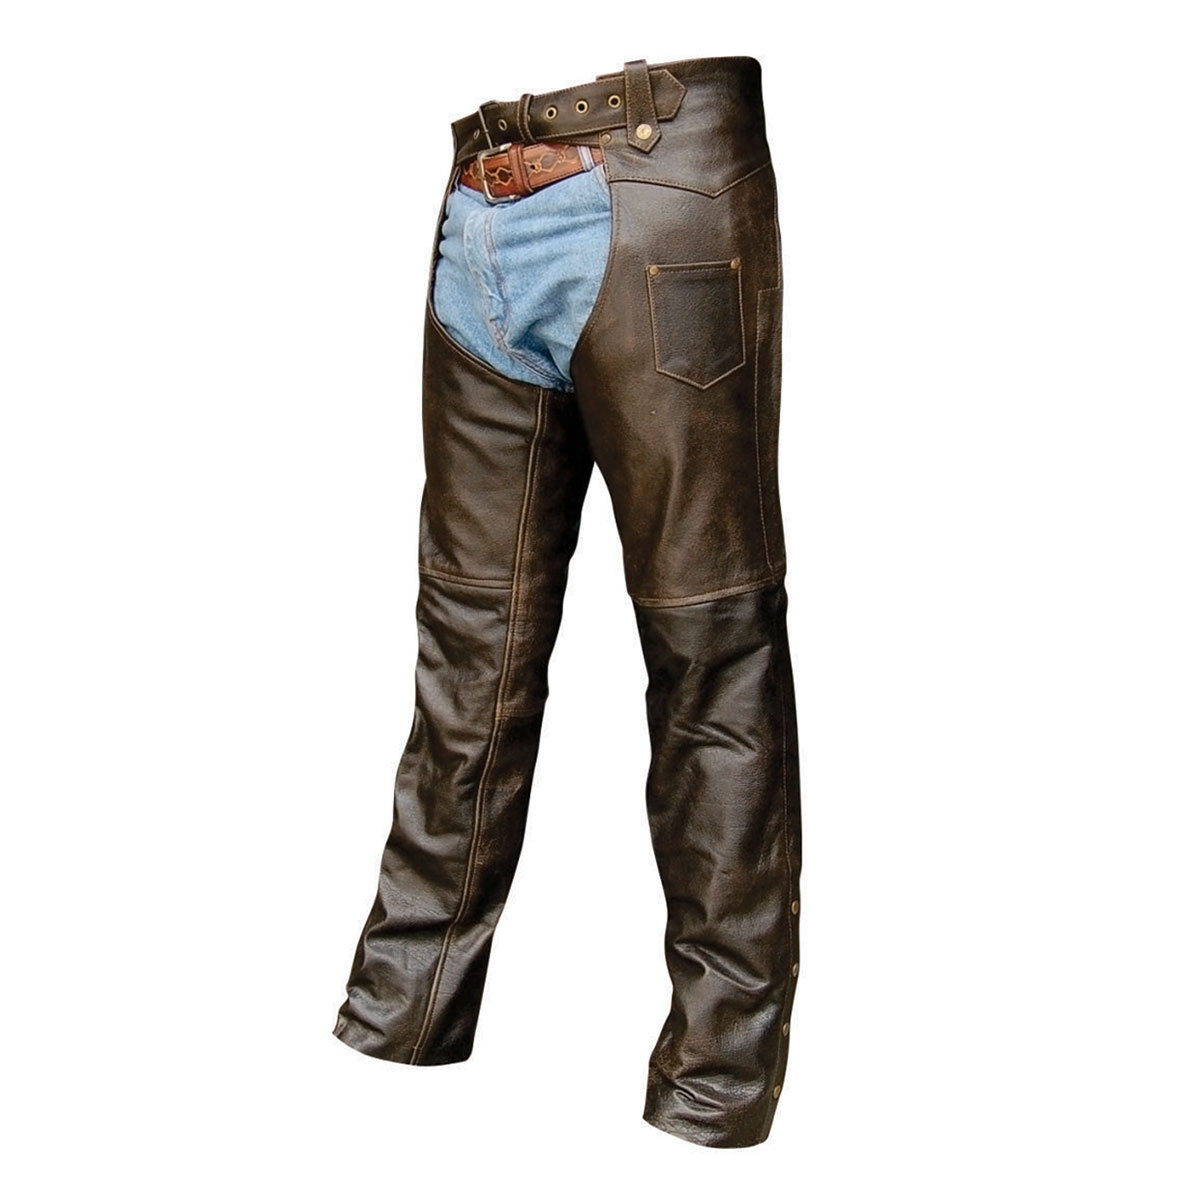 Allstate Sign Service >> Allstate Leather Inc. Retro Brown Buffalo Leather Chaps | 724-570 | J&P Cycles